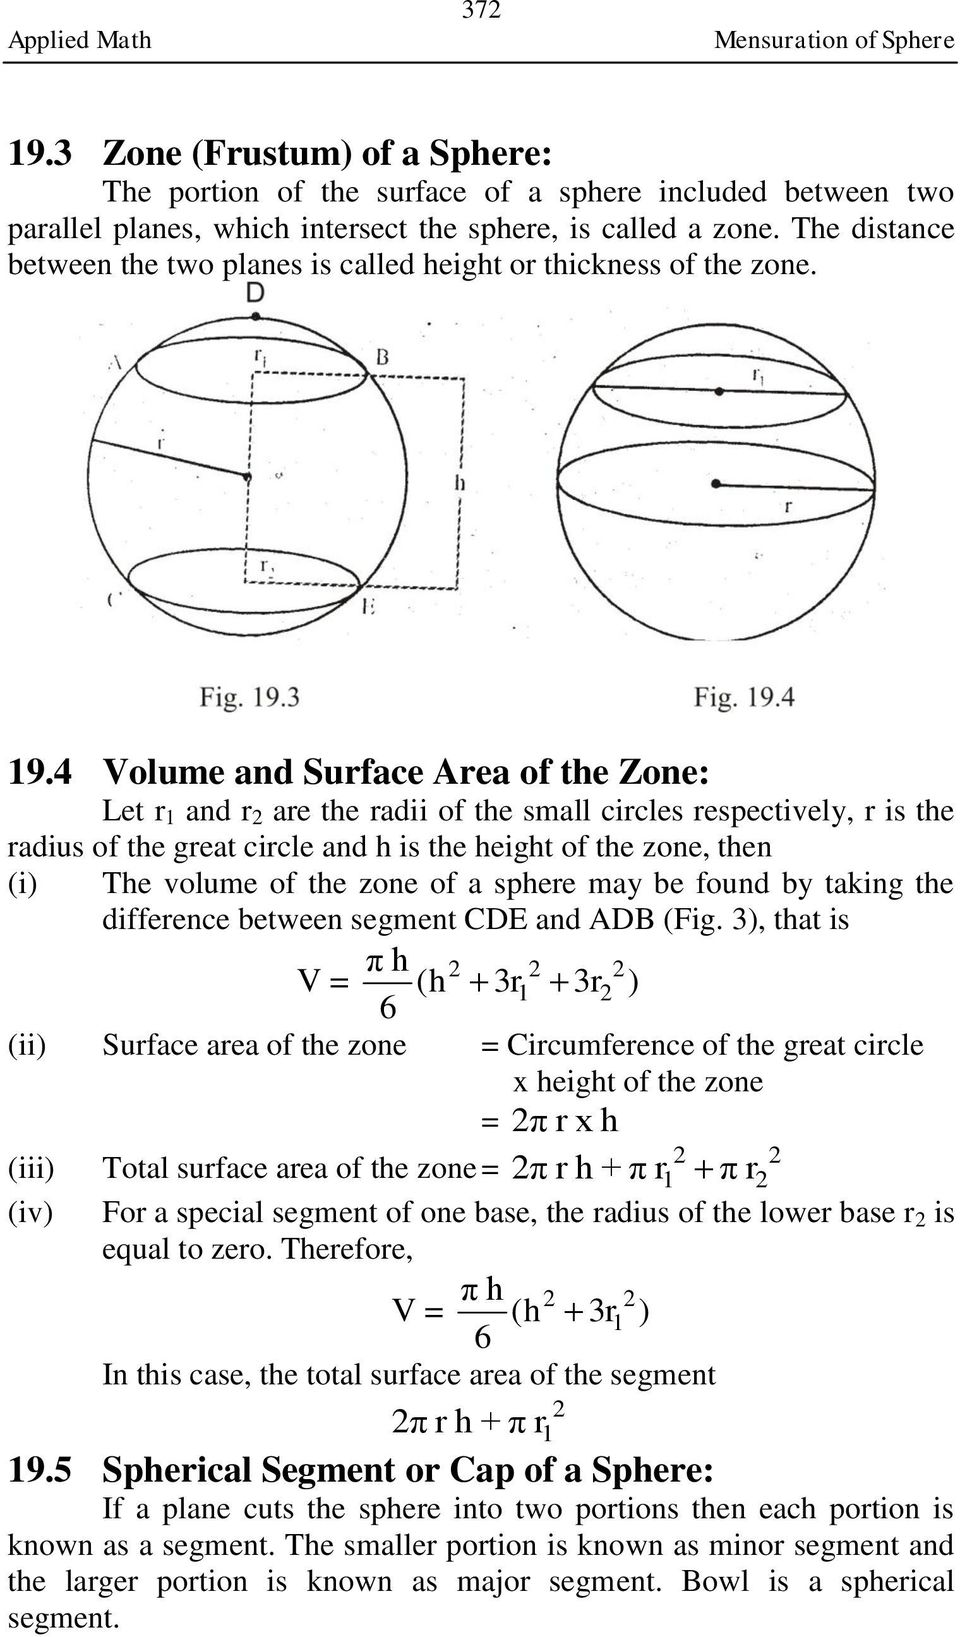 4 Volume and Surface Area of the Zone: Let r 1 and r are the radii of the small circles respectively, r is the radius of the great circle and h is the height of the zone, then (i) The volume of the